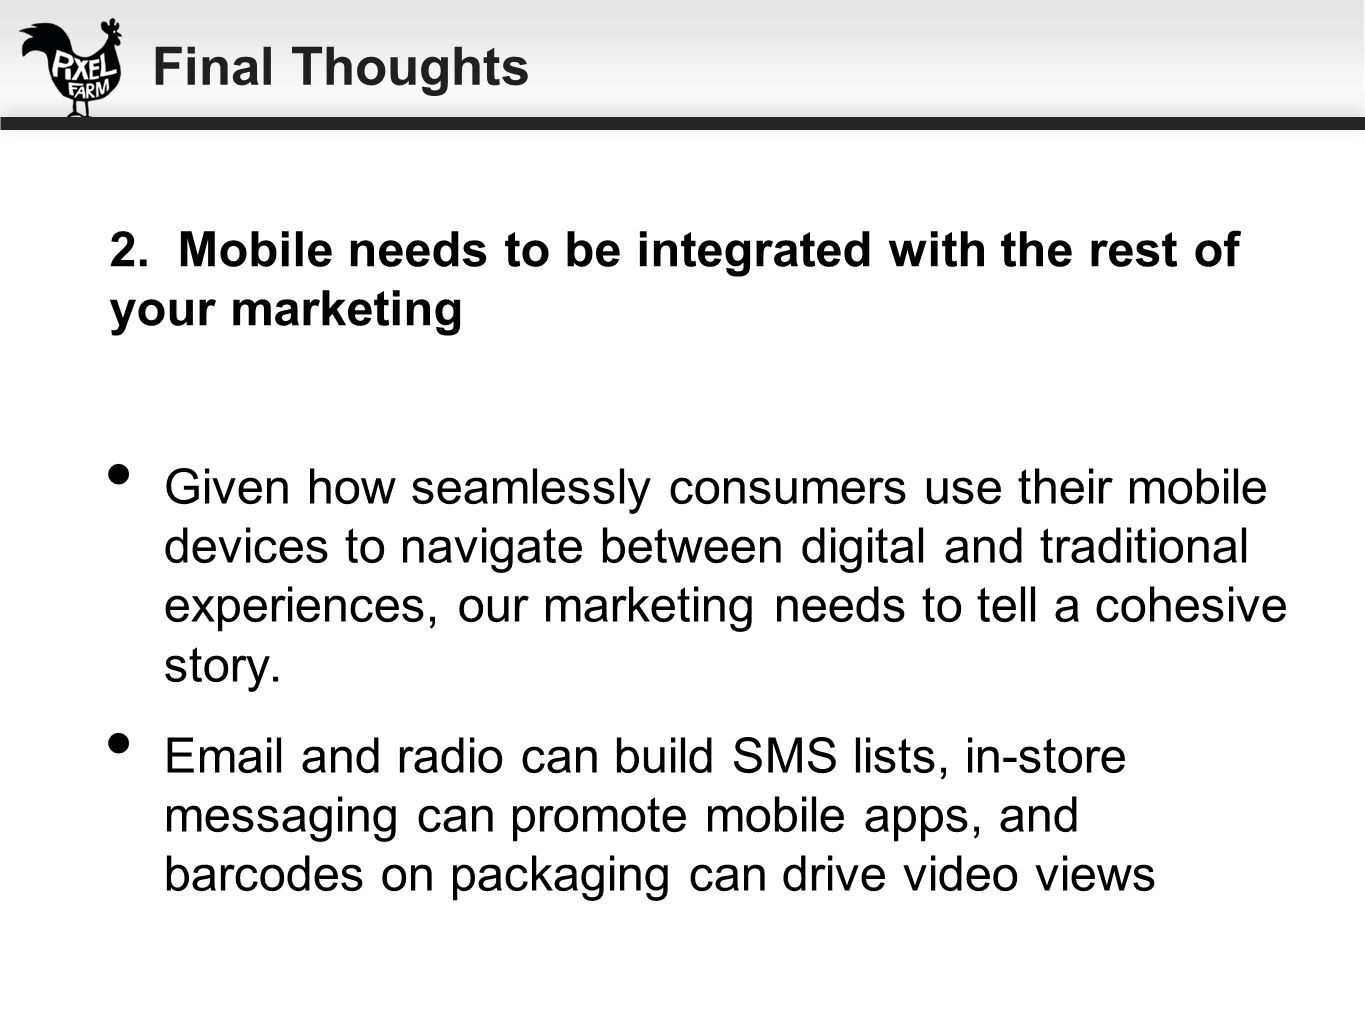 Final Thoughts2. Mobile needs to be integrated with the rest of your marketing.